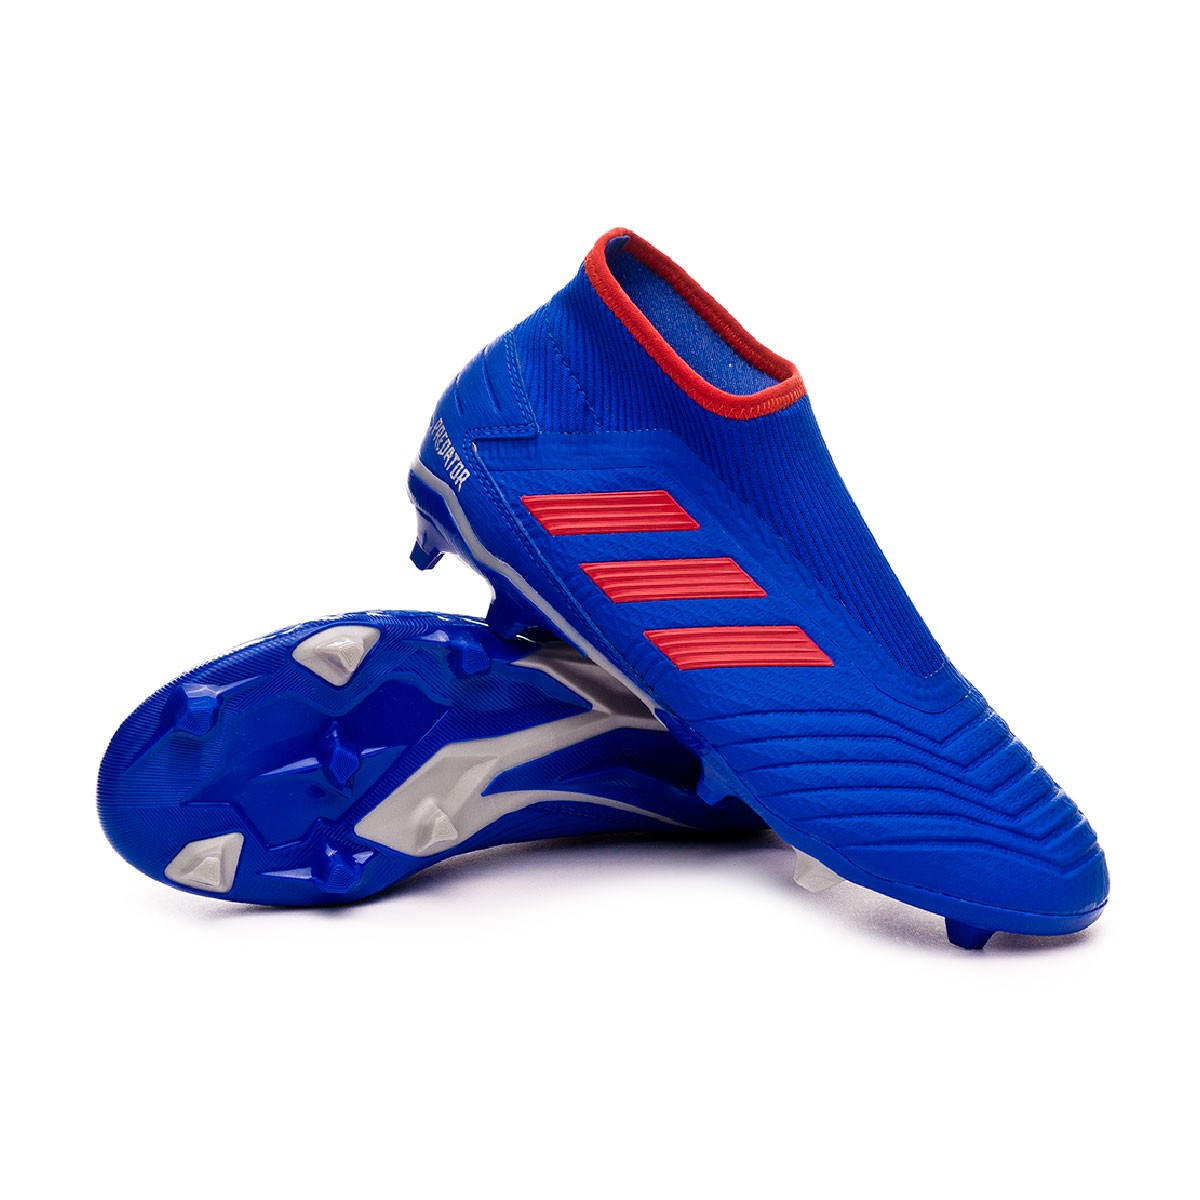 34f3541aa027 Football Boots adidas Predator 19.3 FG LaceLess Bold blue-Active red ...